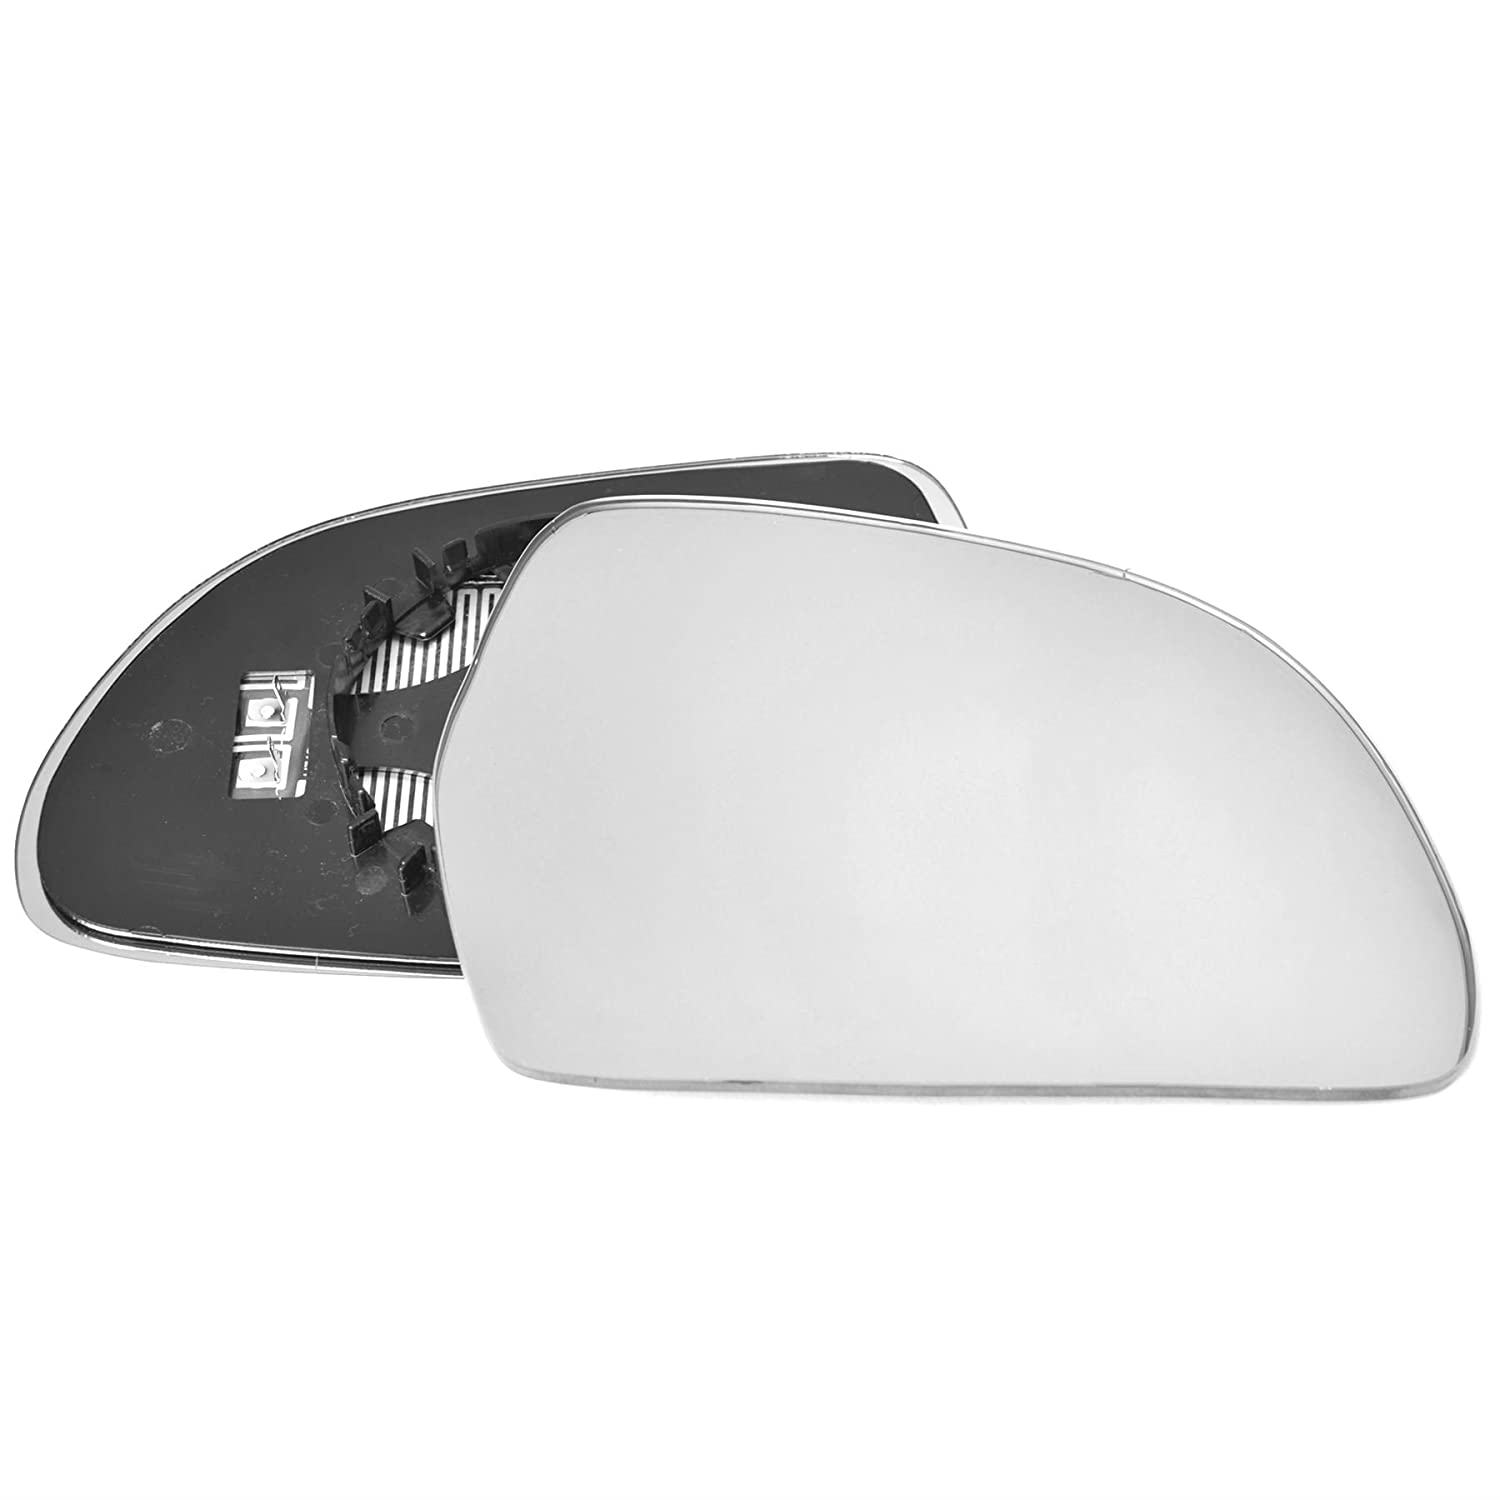 Driver right hand side Heated wing door Silver mirror glass with backing plate #C-SHY/R-AIA308 [Clip On] Sylgab